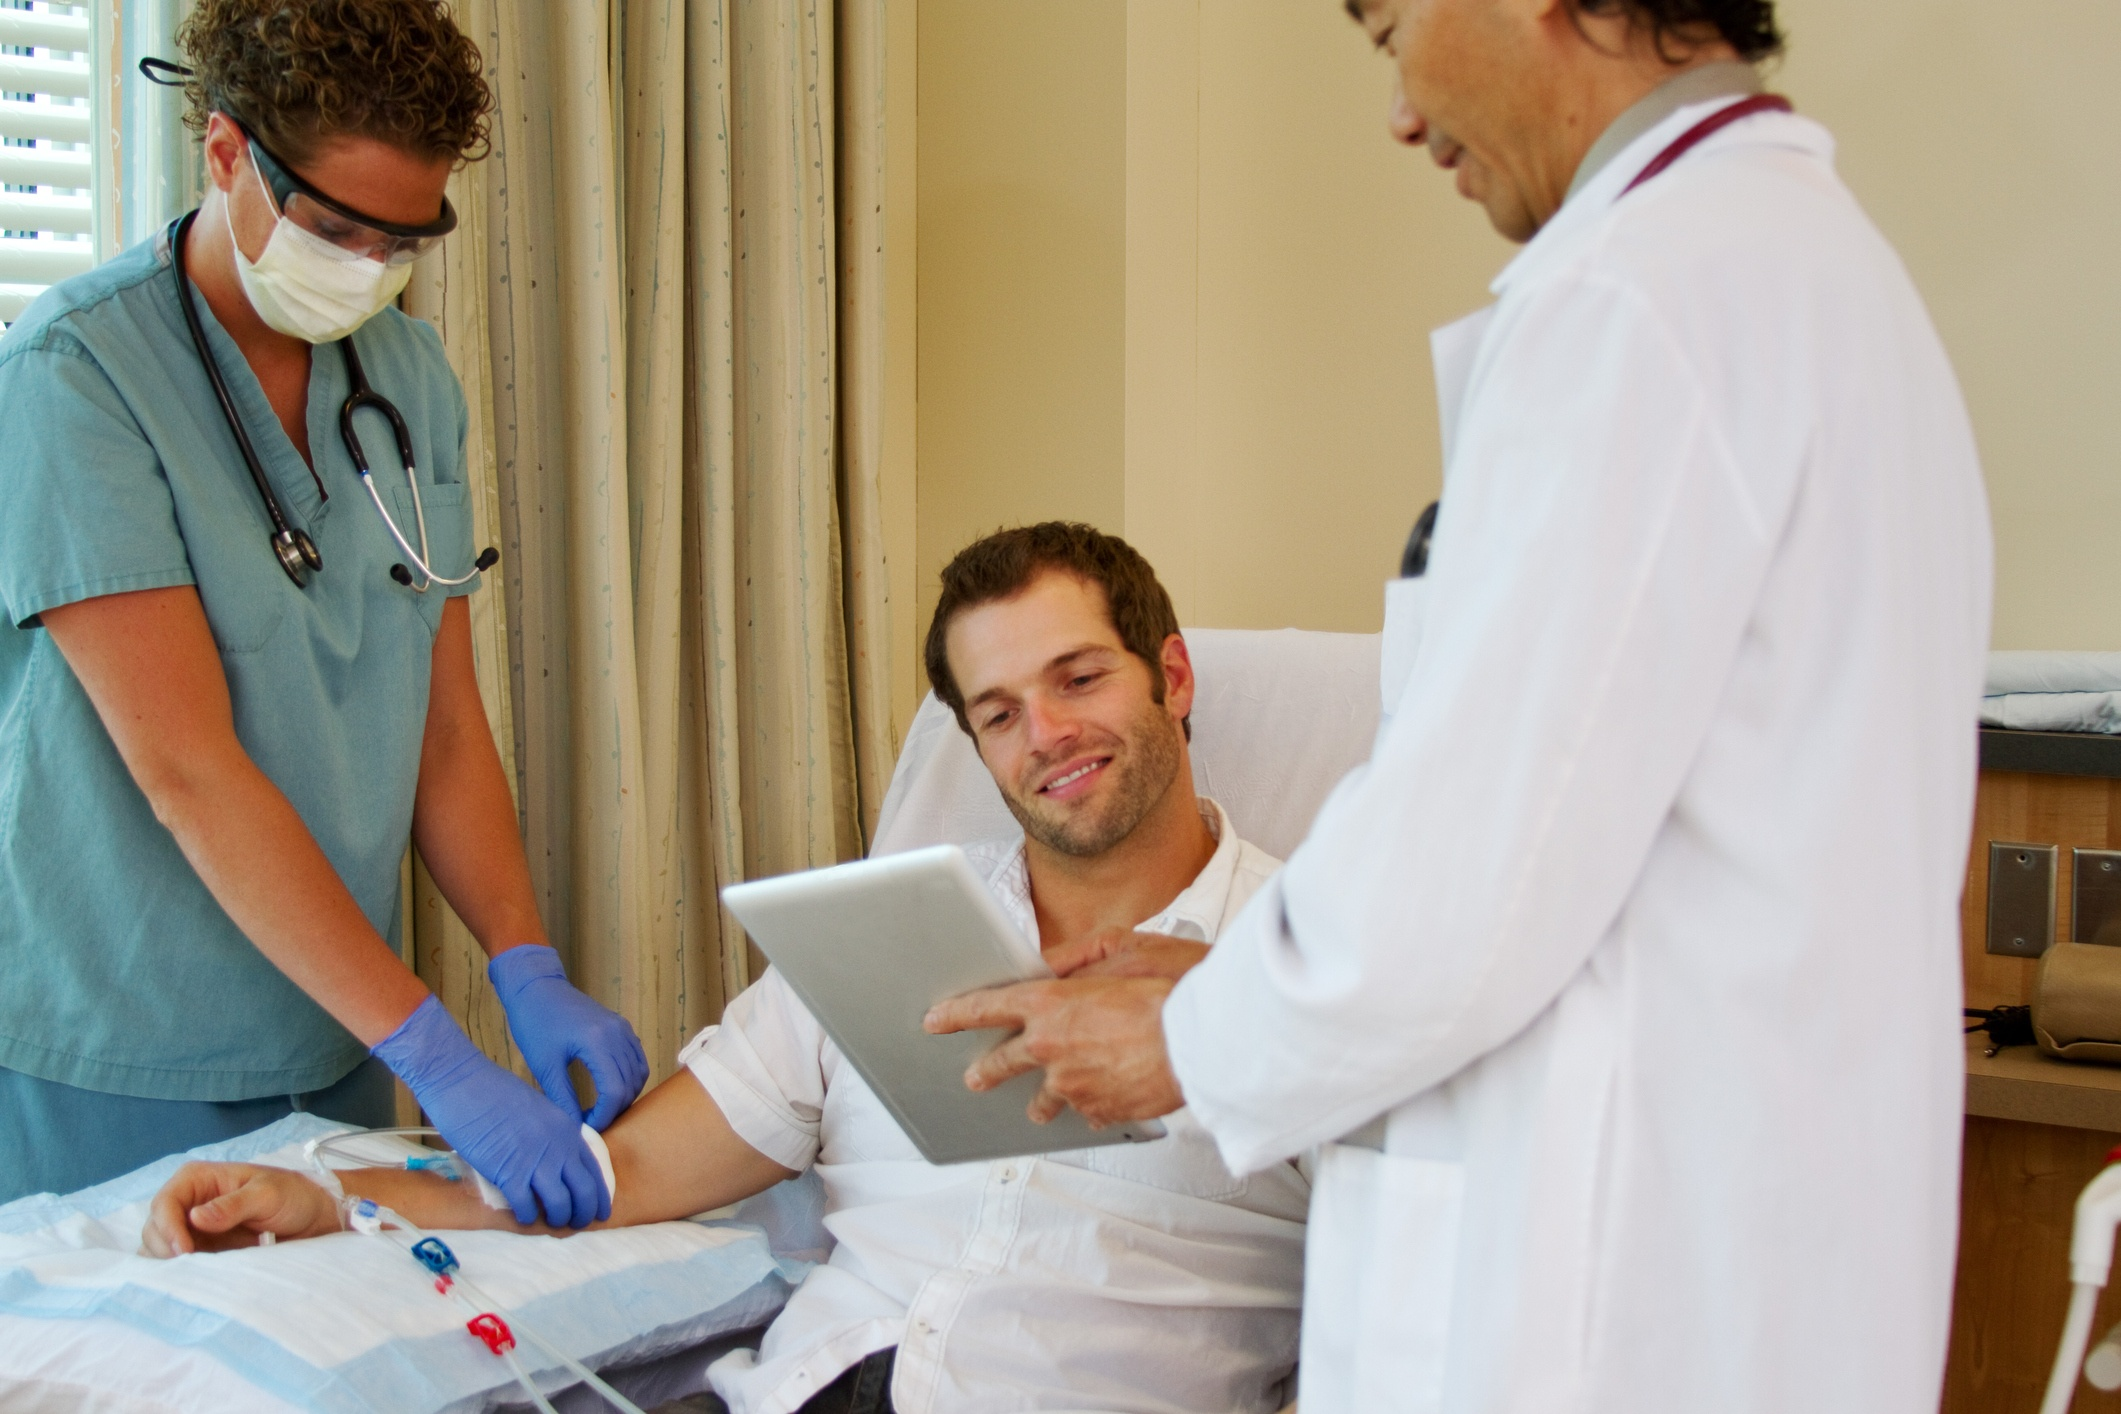 5 Simple Ways to Improve the Dialysis Patient Experience